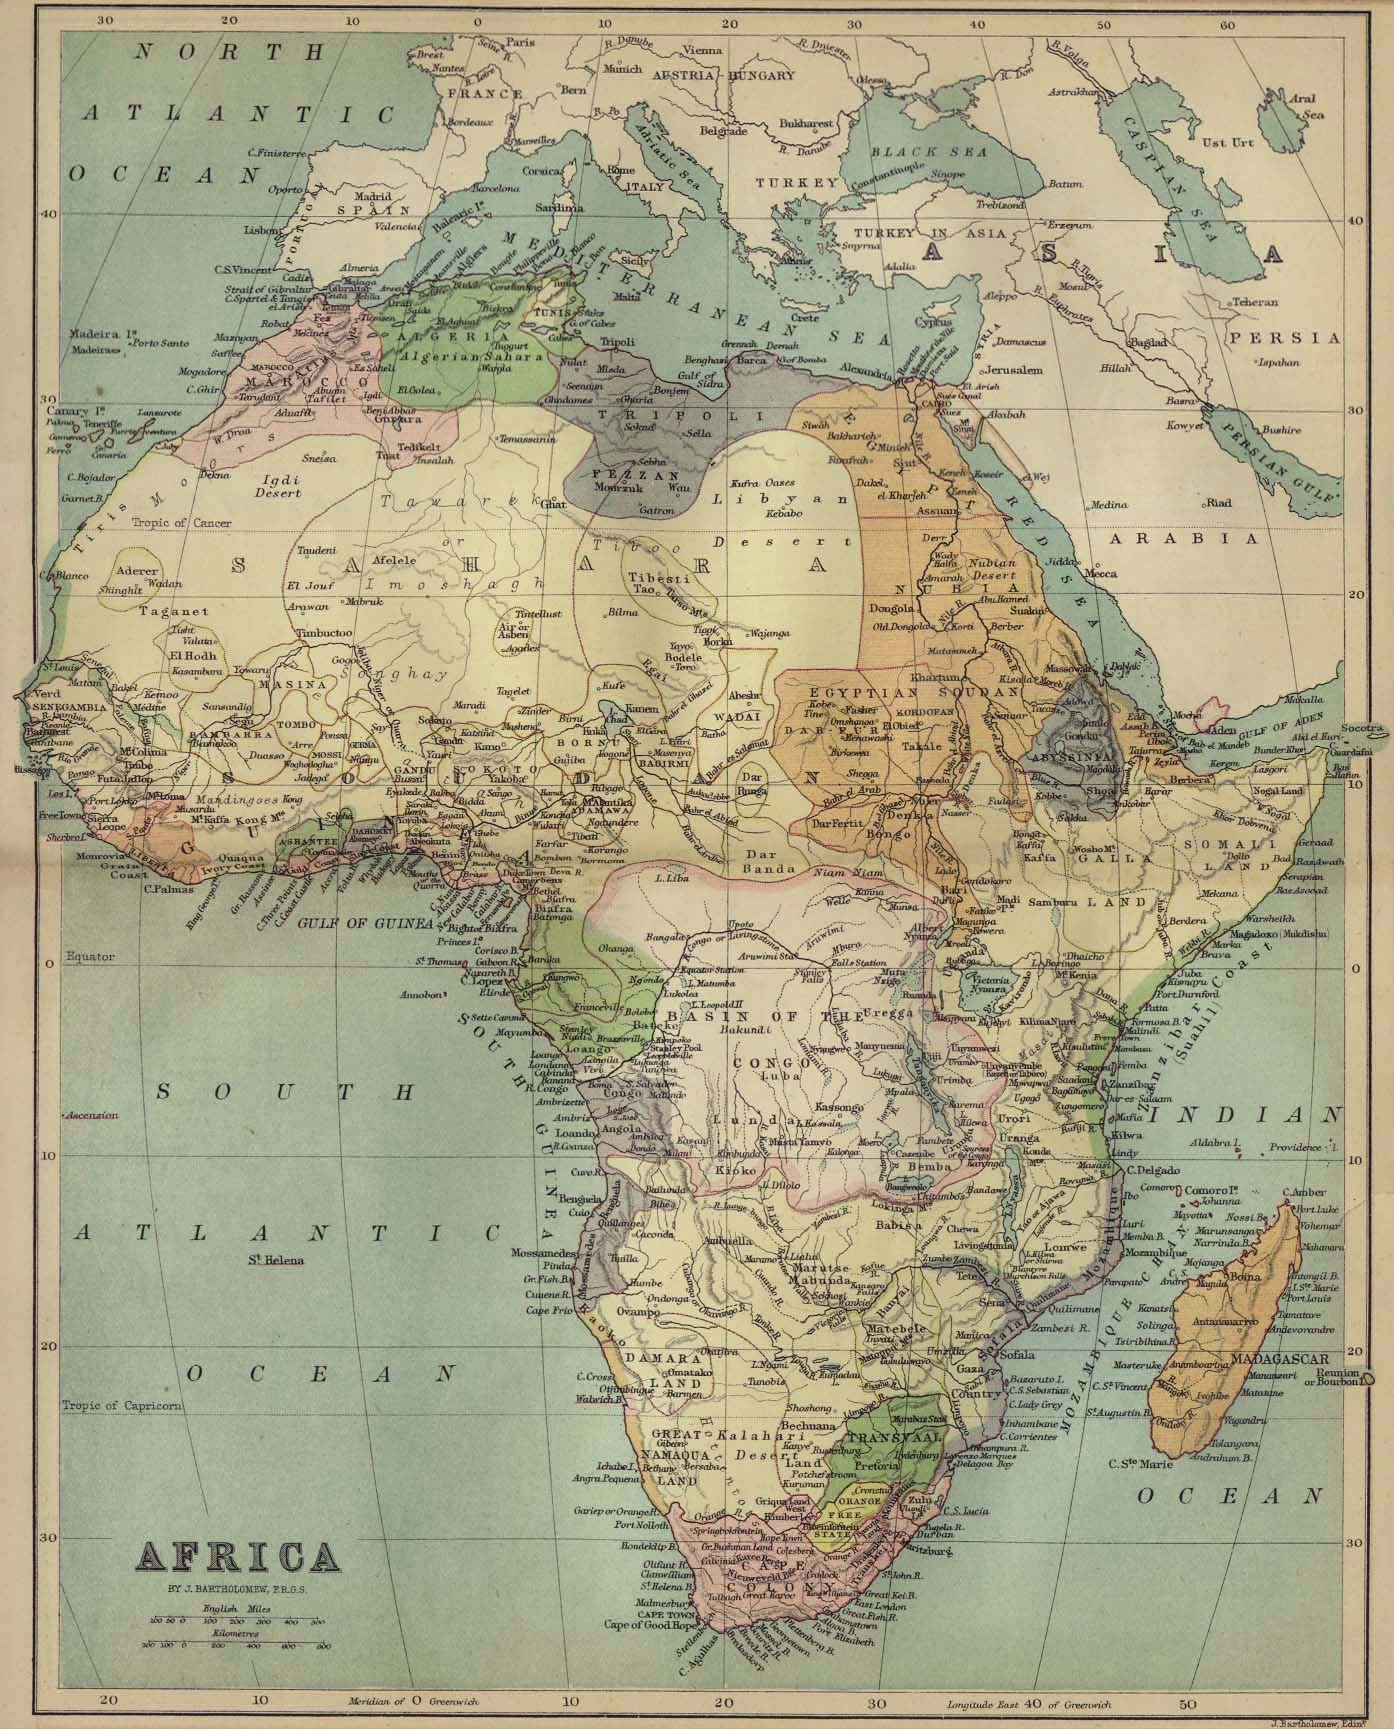 Africa Historical Maps - Perry-Castañeda Map Collection - UT ...